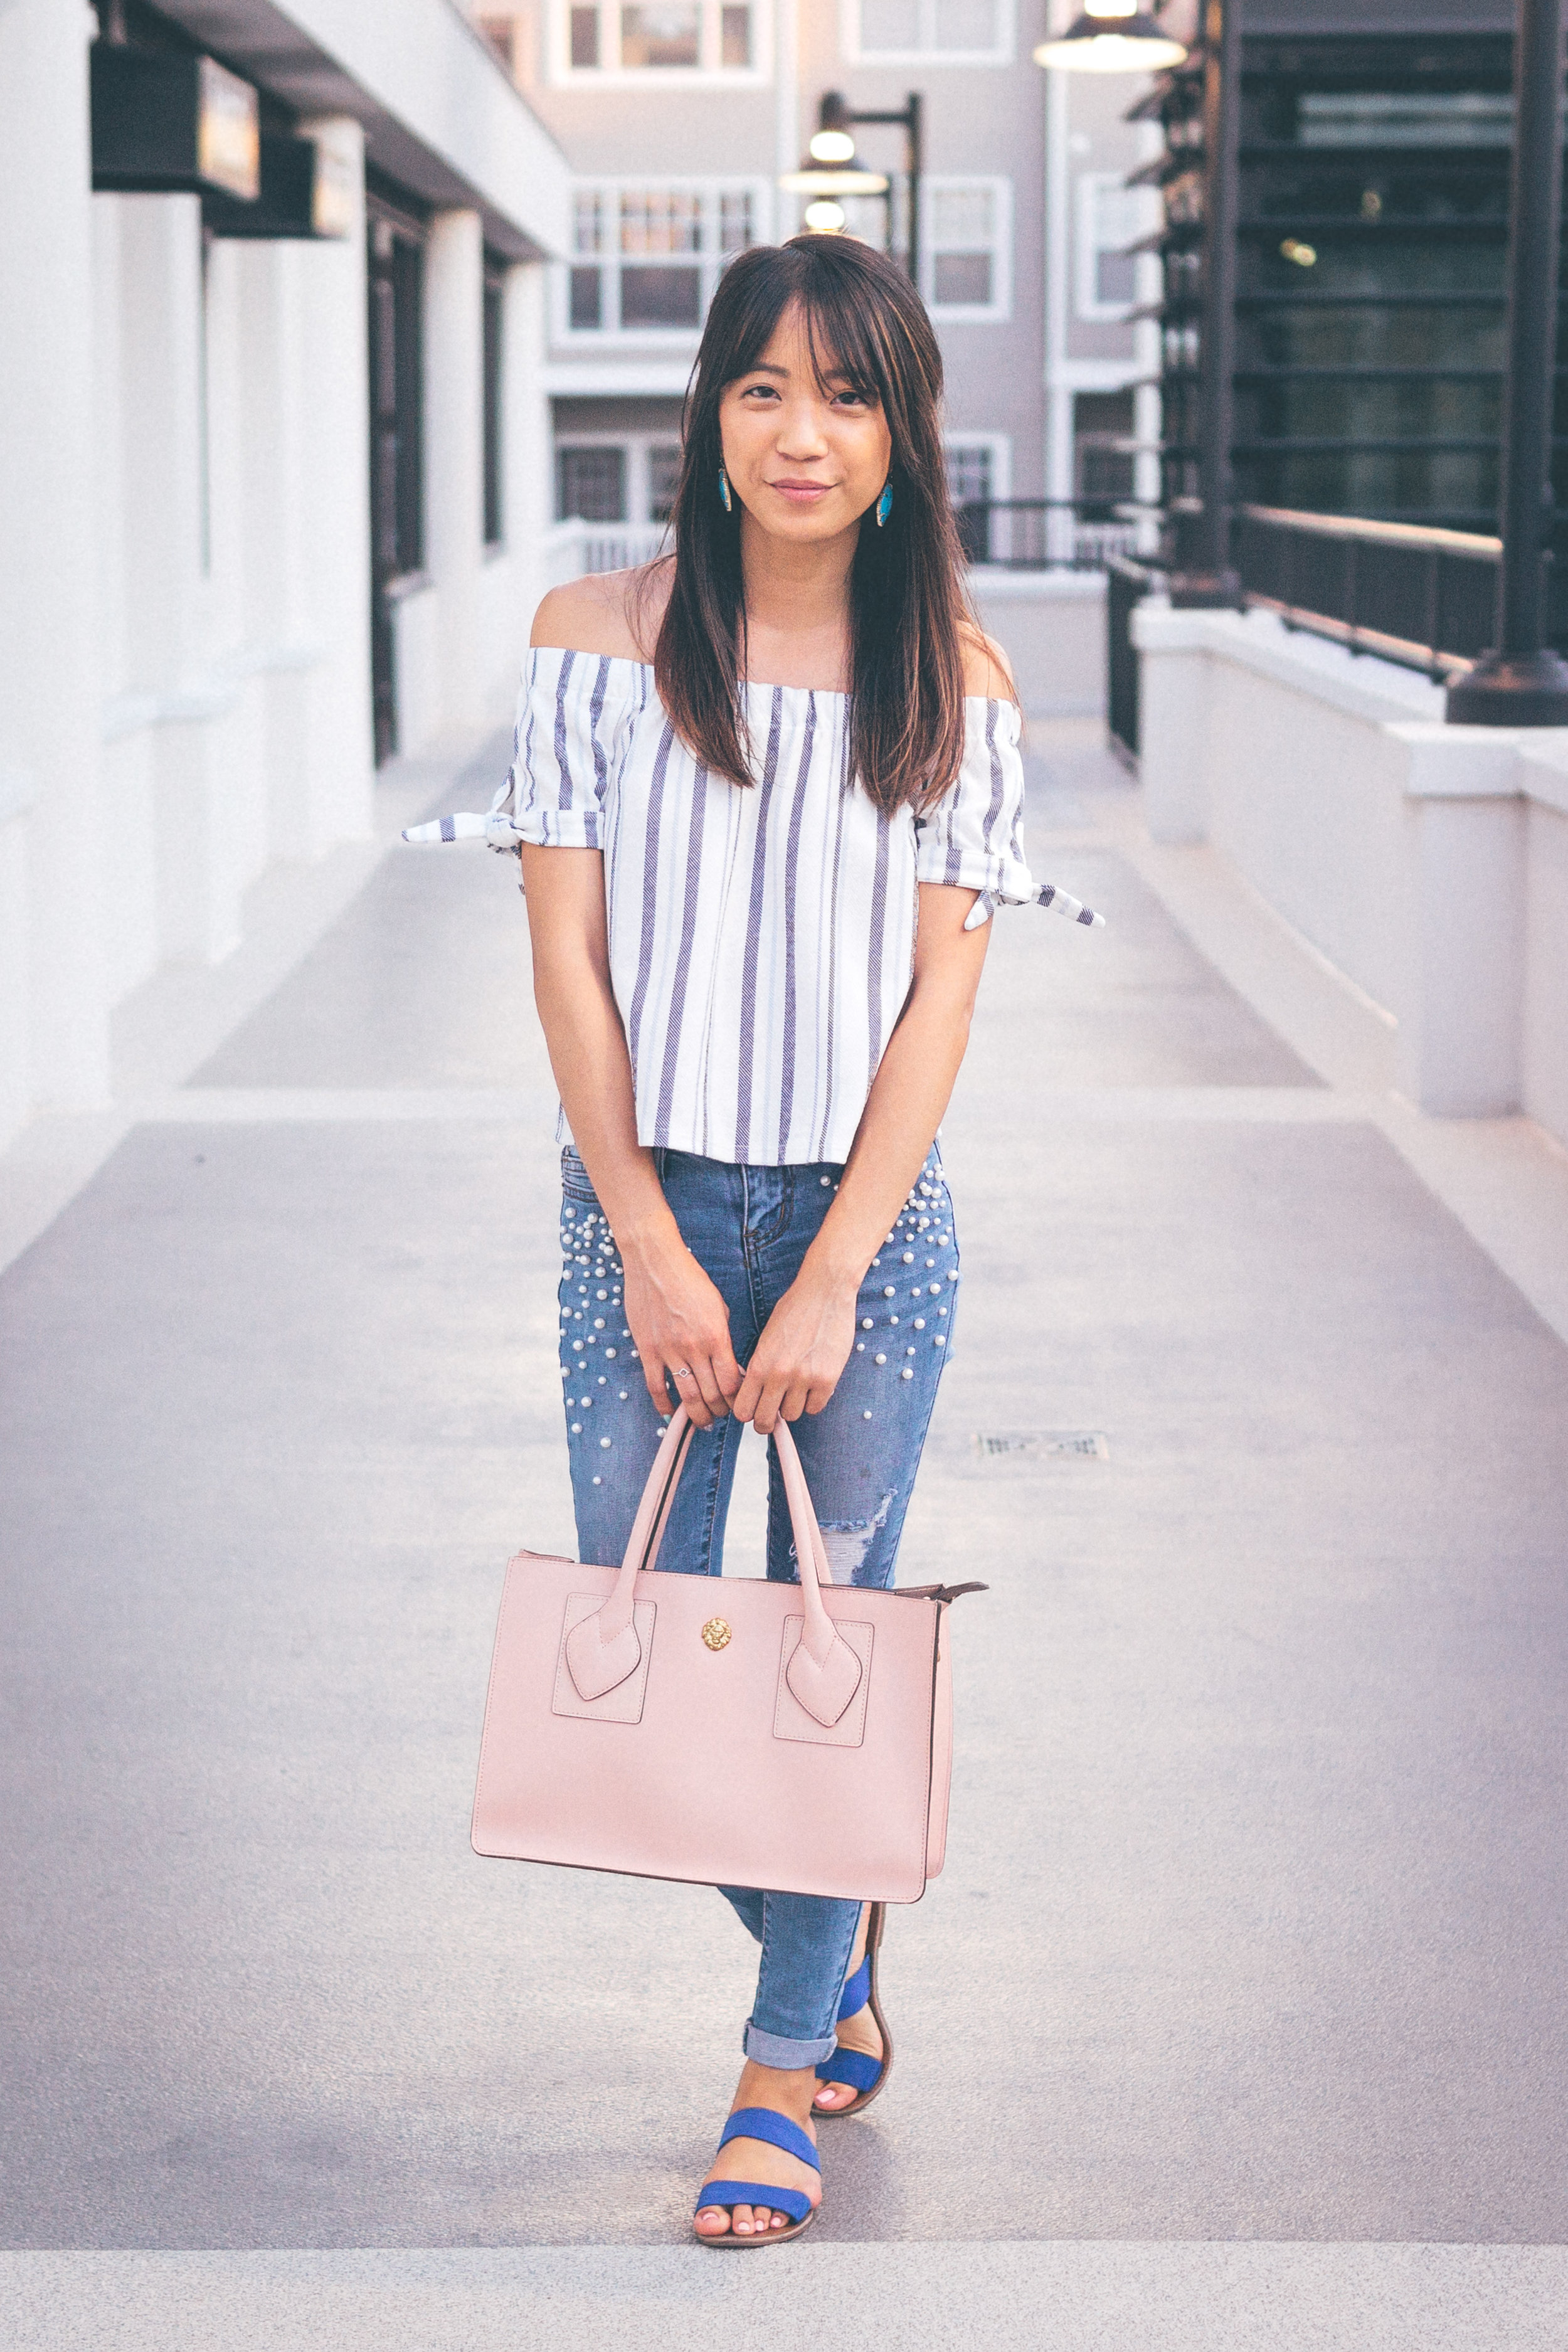 This Jenn Girl - Tampa Blogger - Pearlized Jeans 3